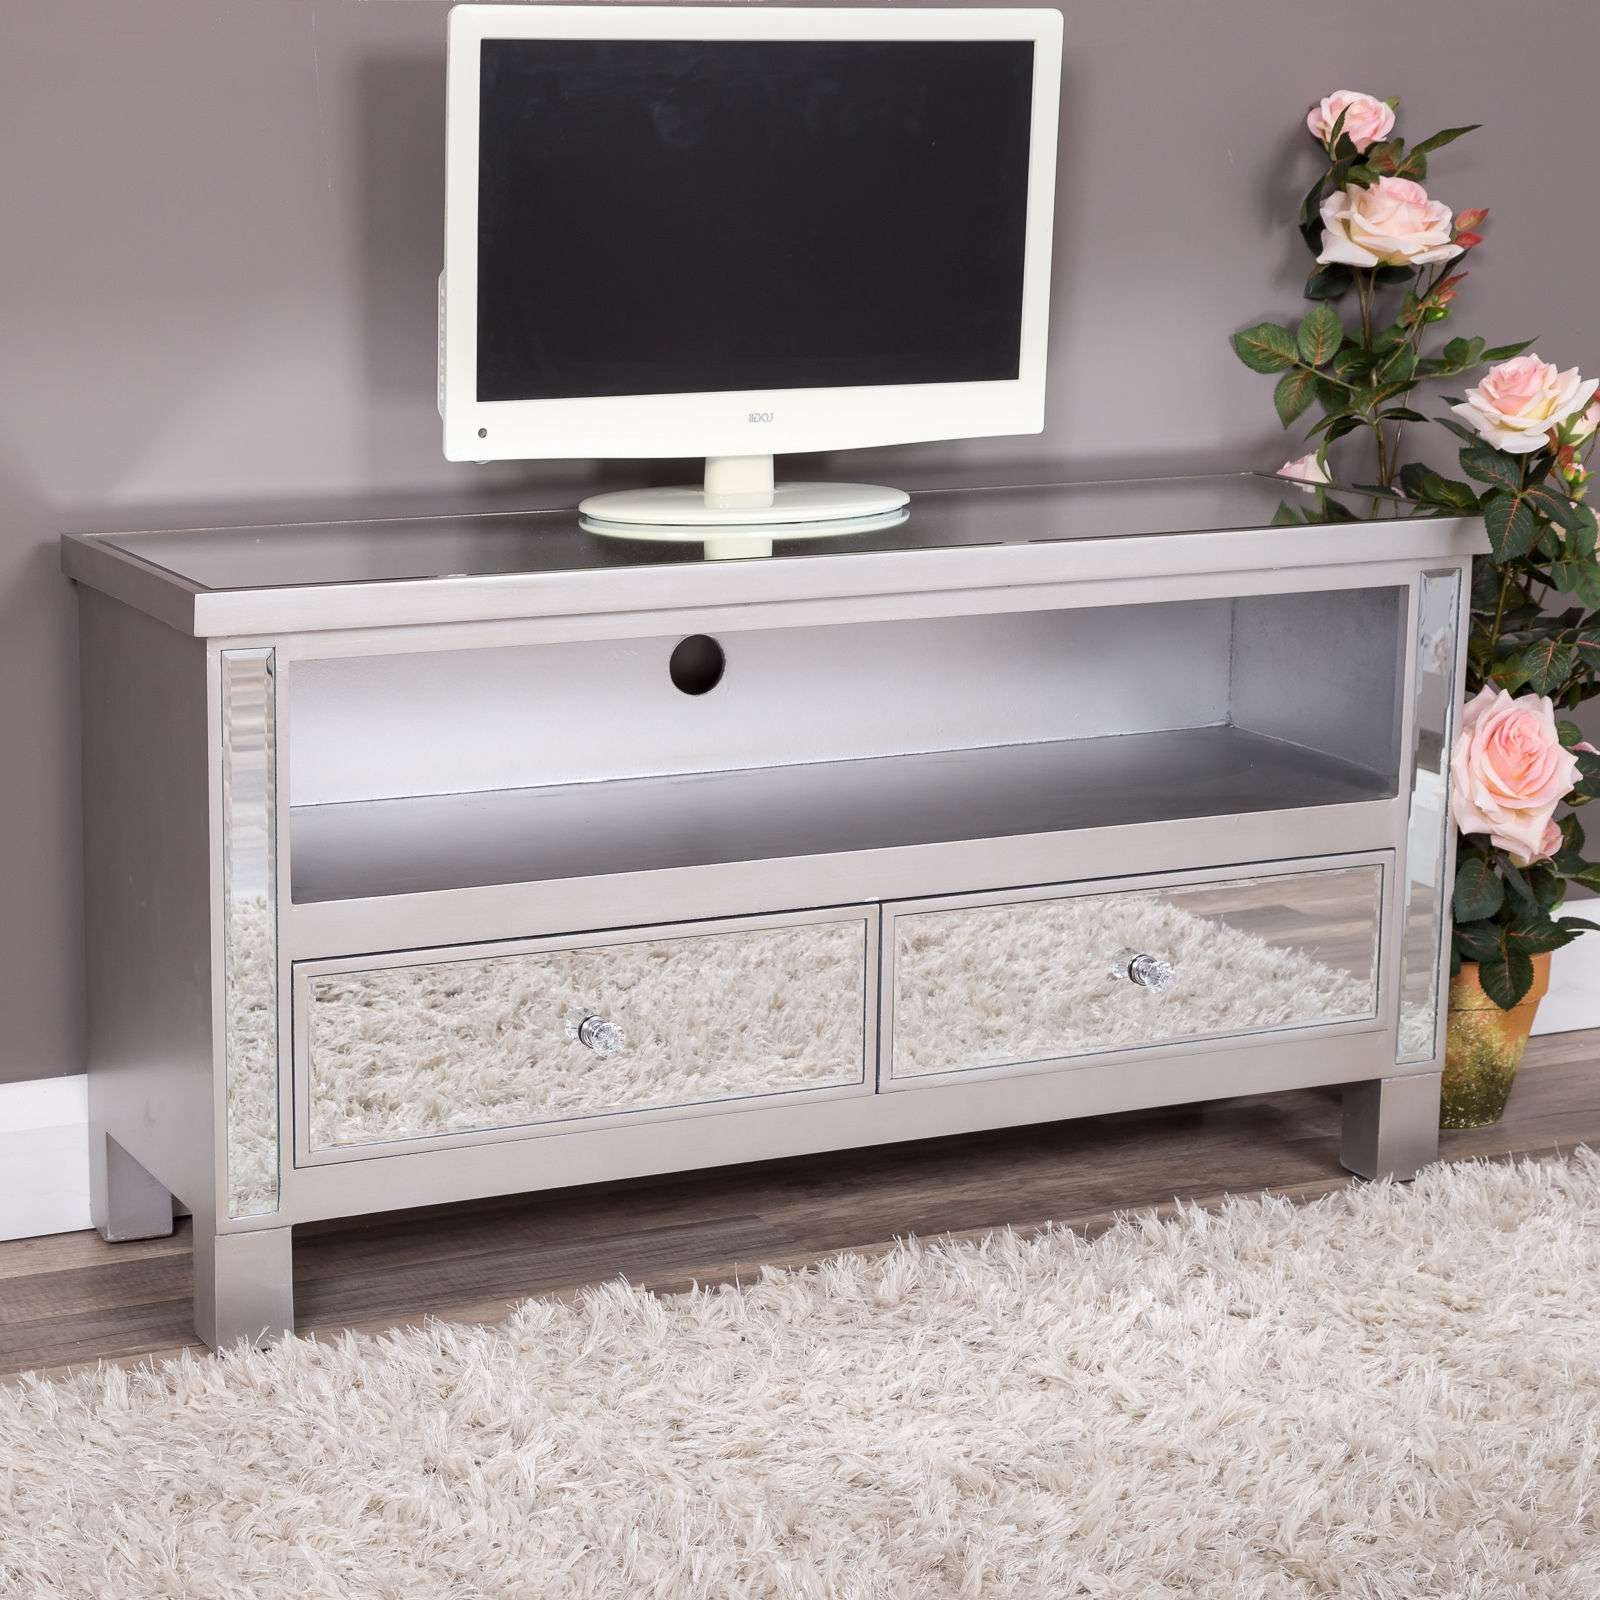 Silver Mirrored Glass 2 Drawer Tv Entertainment Cabinet Stand Unit Inside Silver Tv Stands (View 12 of 15)